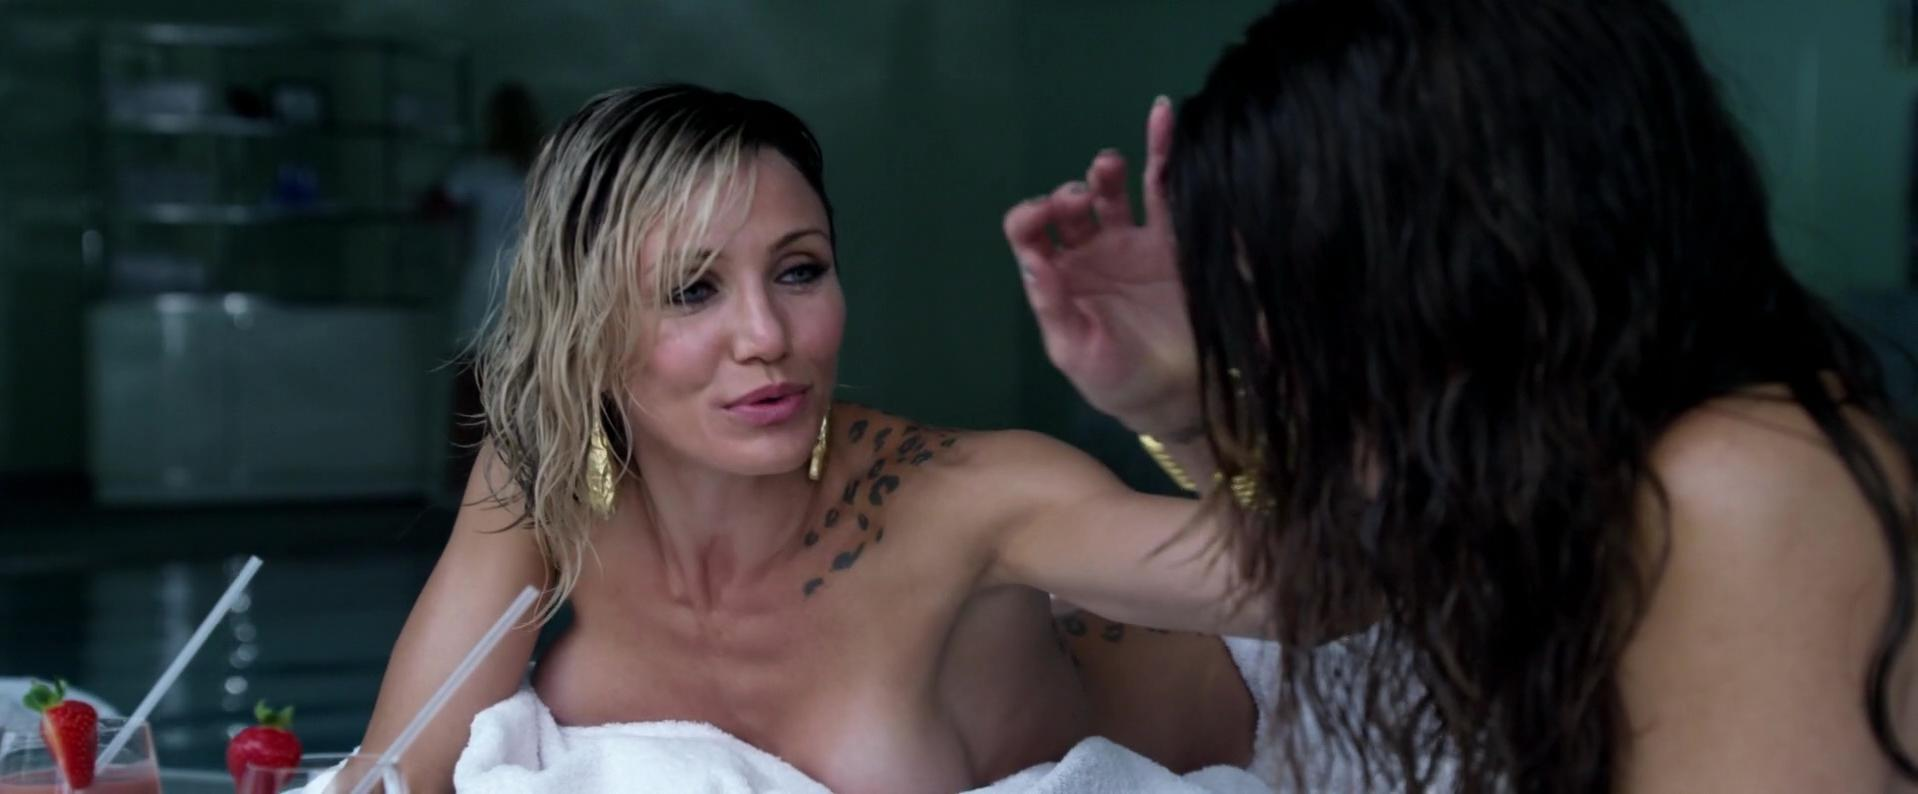 Cameron Diaz nude - The Counselor (2013)